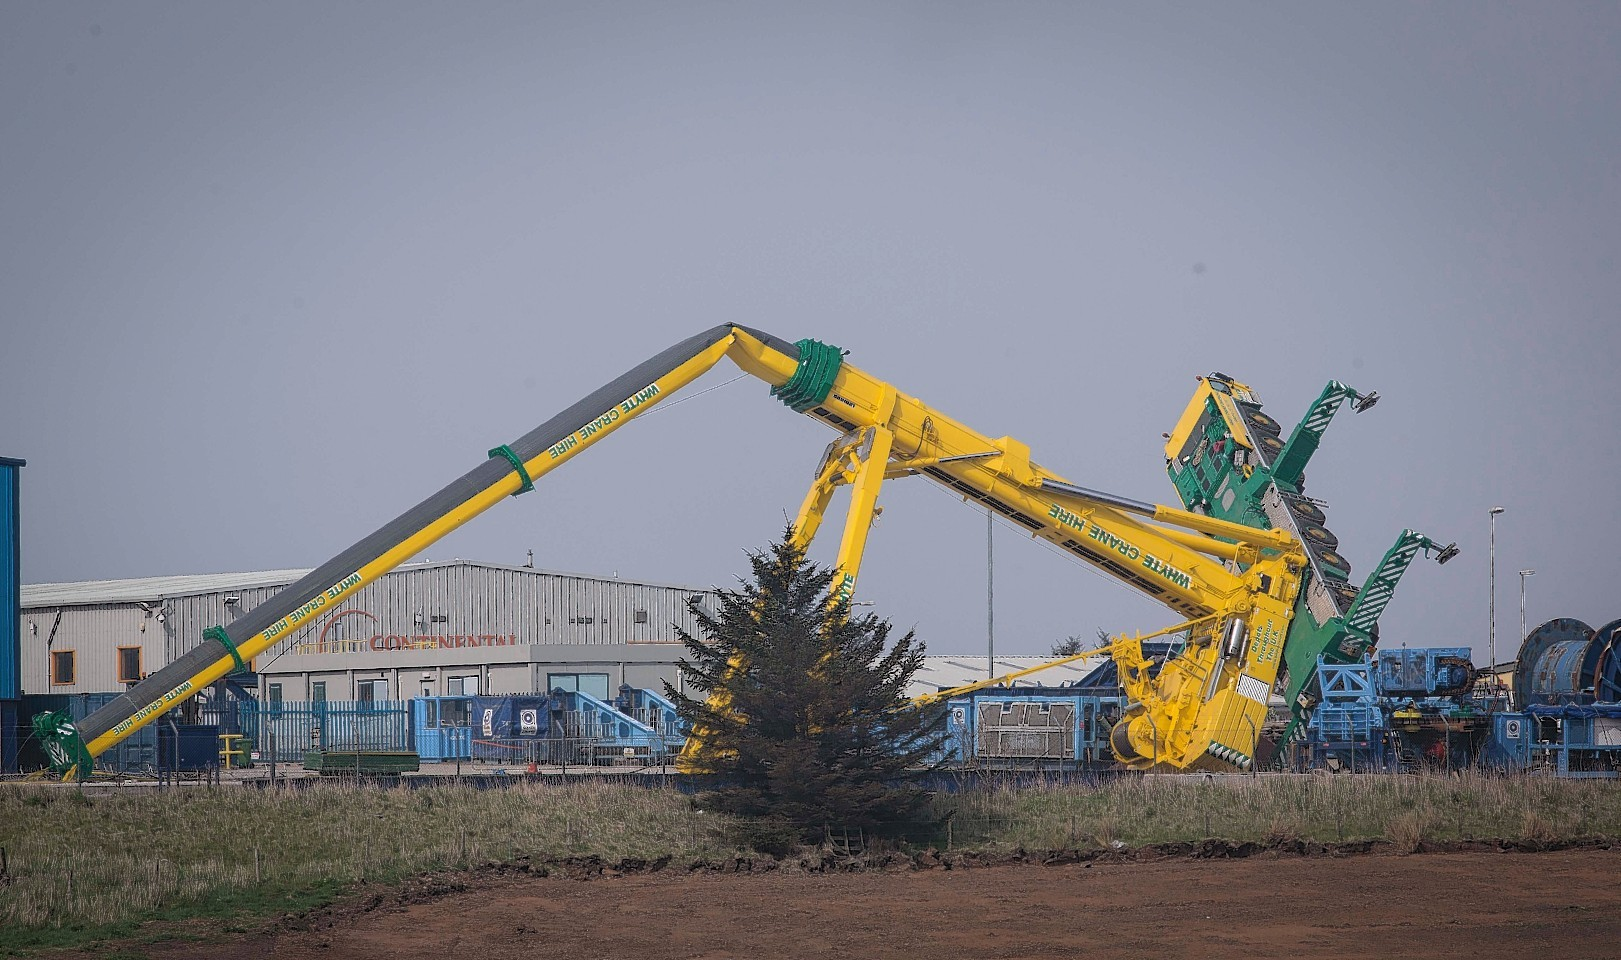 The collapsed Crane at Peterhead's Dales Industrial Estate